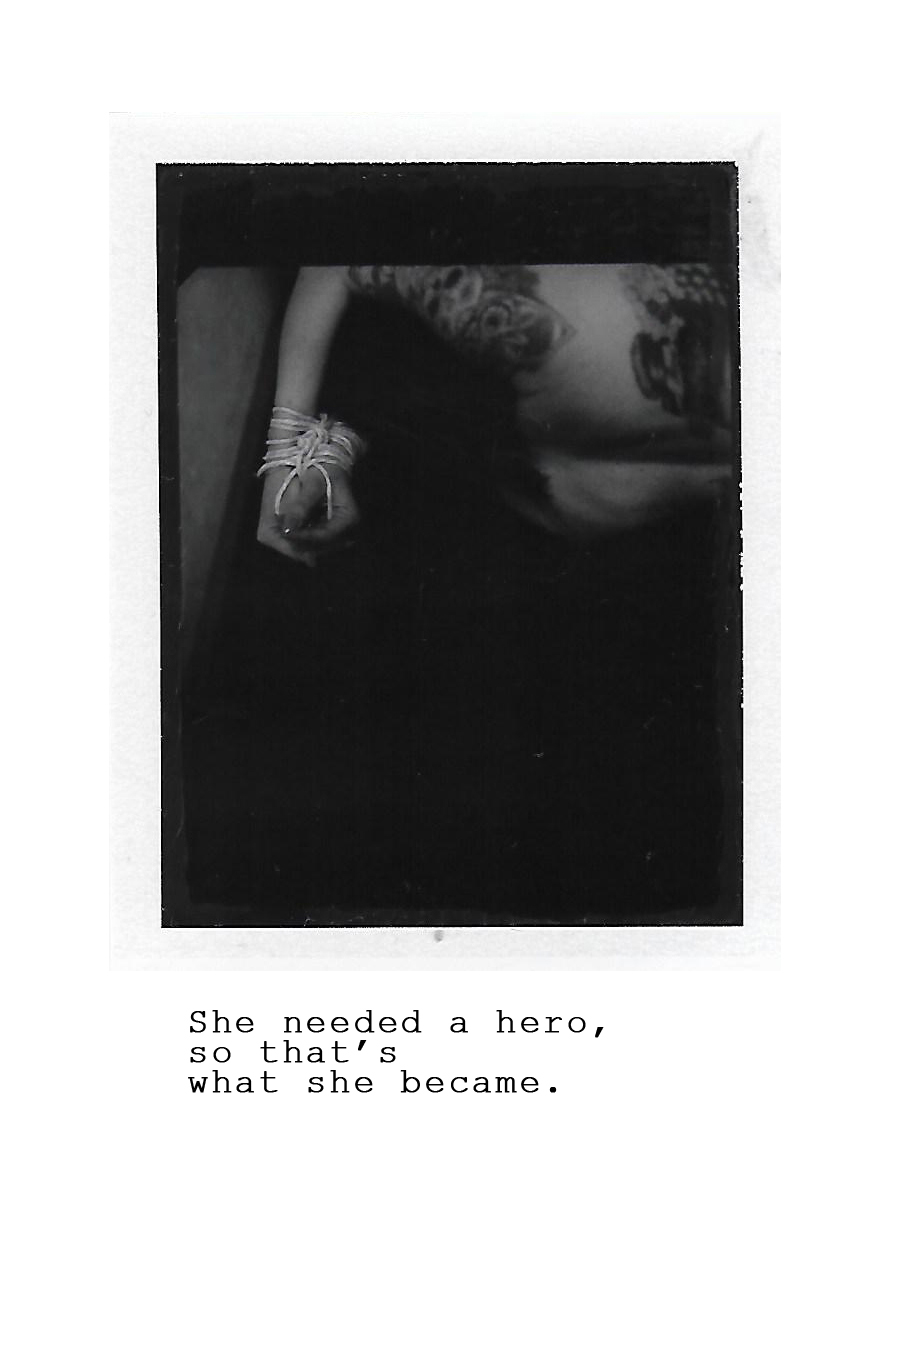 Siegrid Cain Darkroom Instant Film Analog Art Woman bondage darkroom project